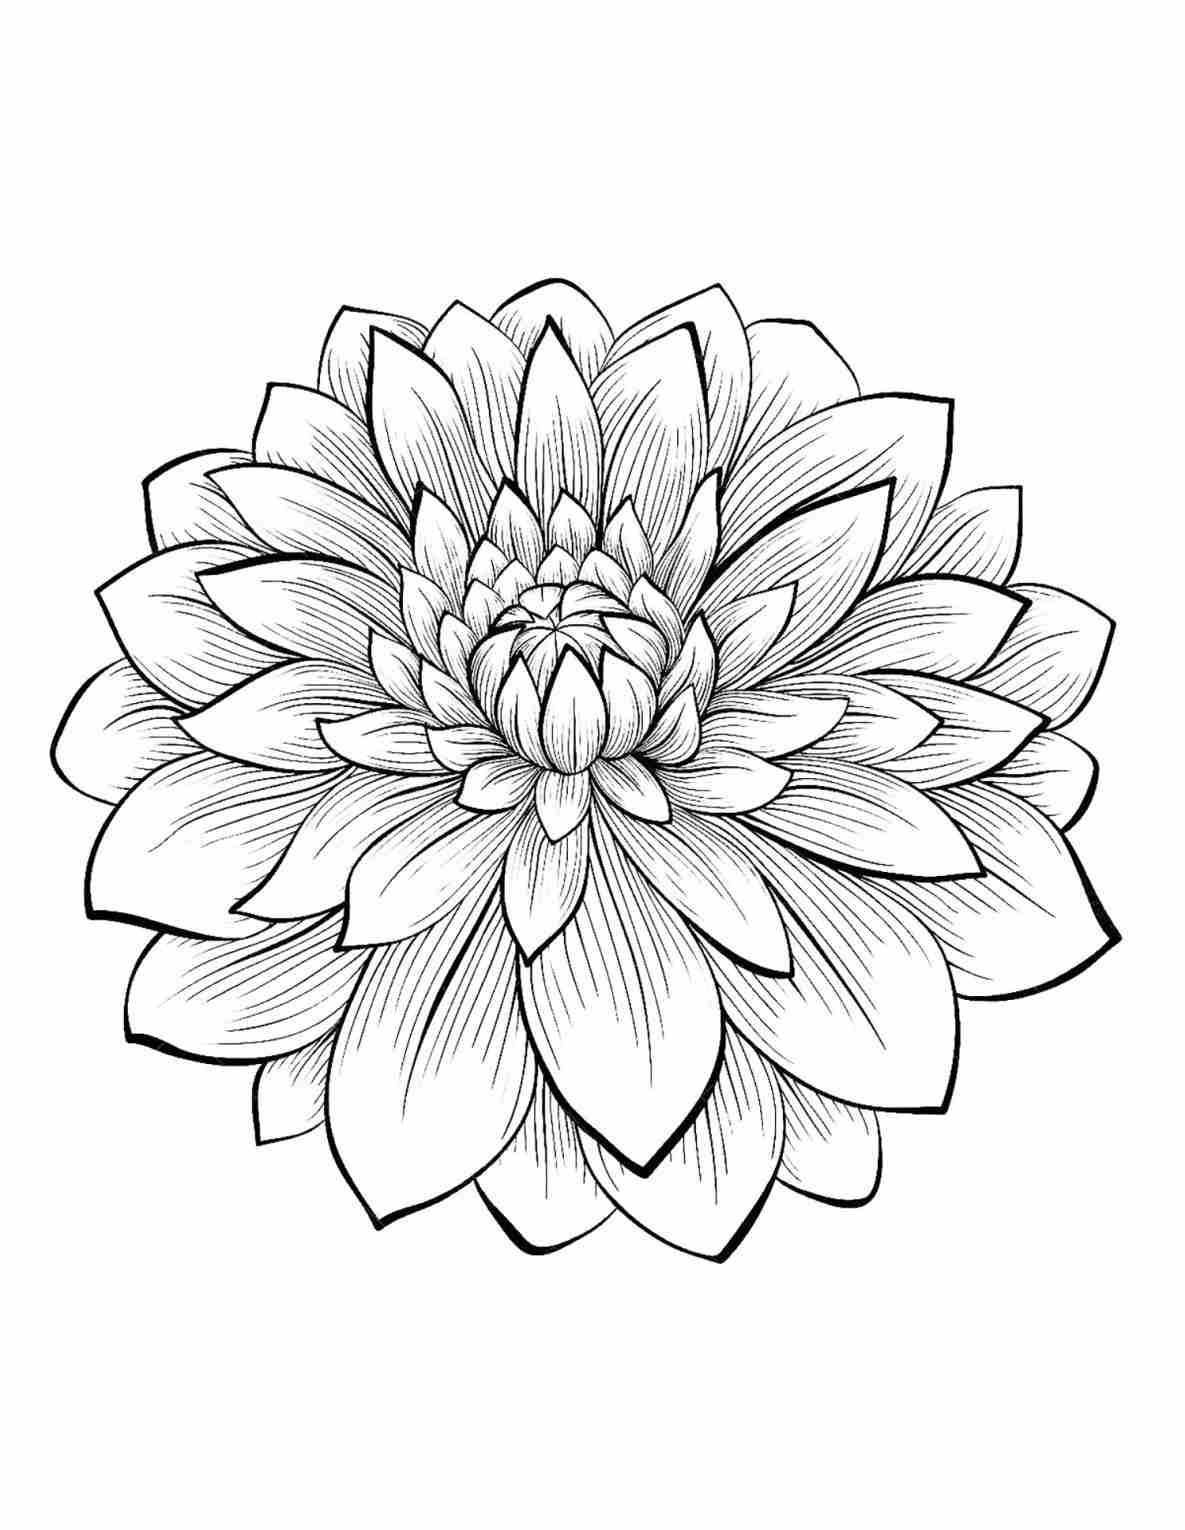 Dahlia flower drawing at getdrawings free for personal use 1185x1530 of the most beautiful s from gallery dahlia flower garden drawing izmirmasajfo